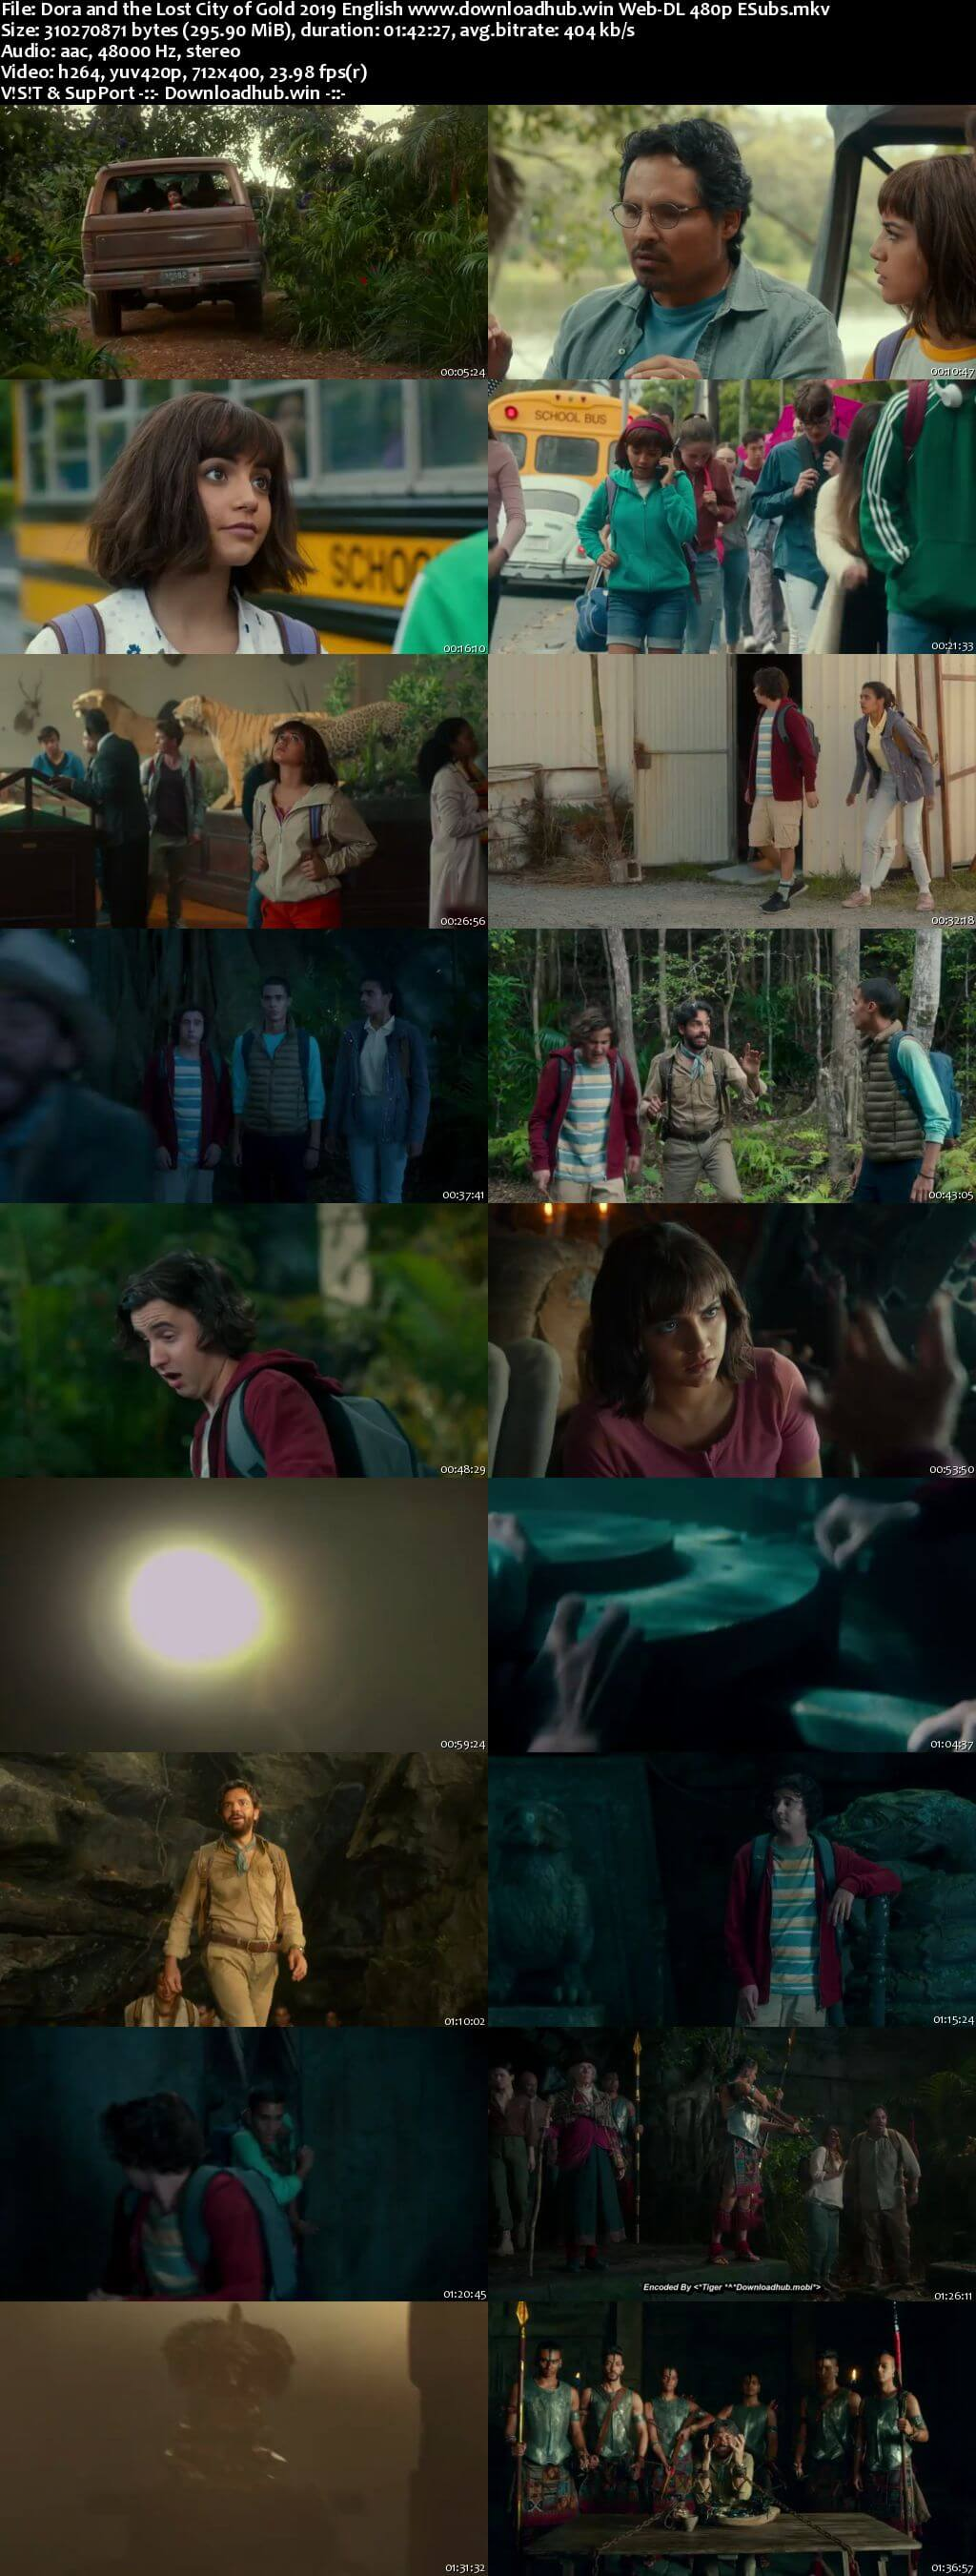 Dora and the Lost City of Gold 2019 English 300MB Web-DL 480p ESubs